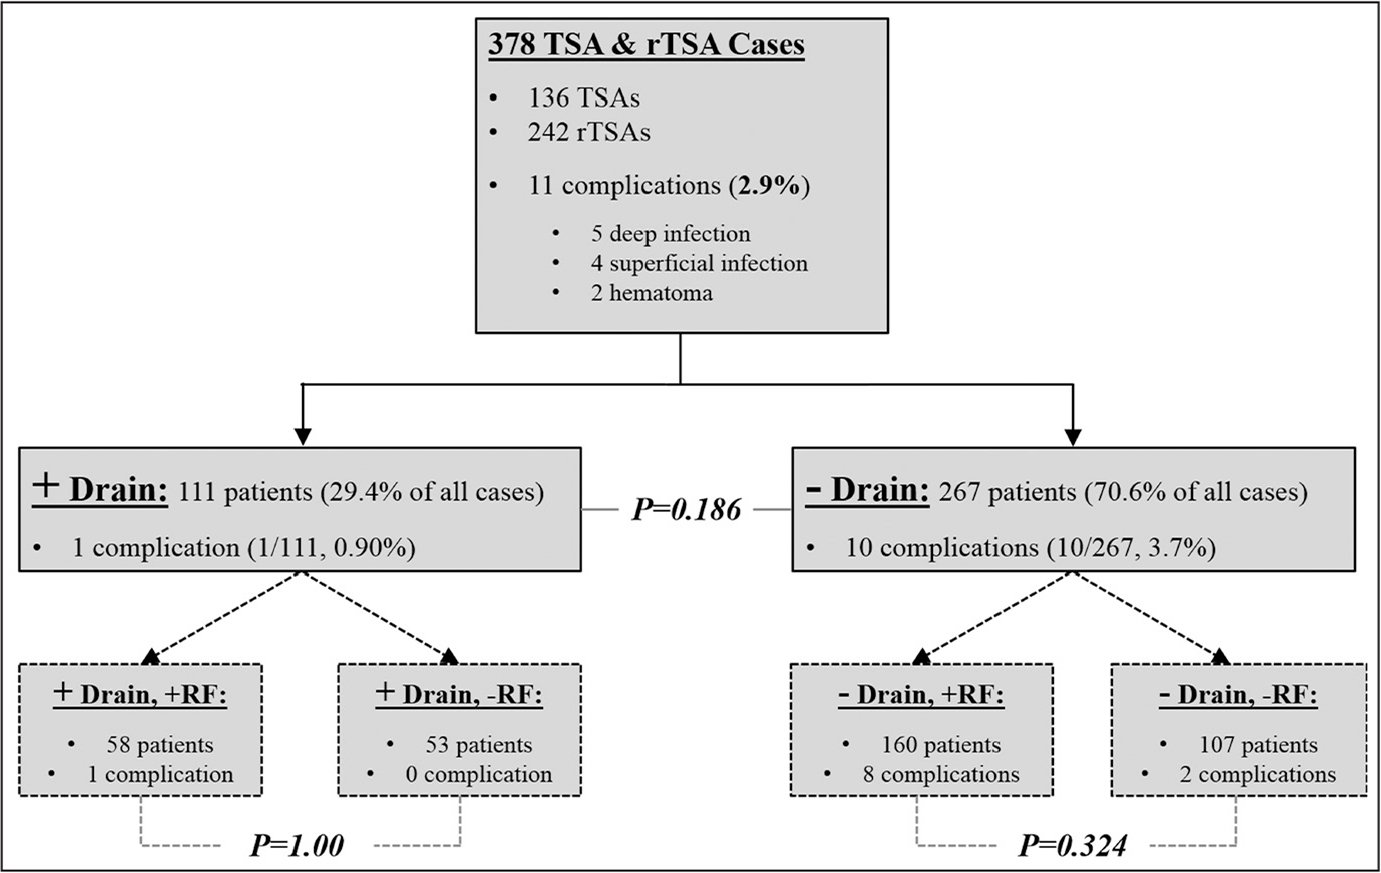 Arthroplasty patients and complications identified as a function of drain use postoperatively. Abbreviations: RF, risk factors; rTSA, reverse total shoulder arthroplasty; TSA, total shoulder arthroplasty; +, positive; −, negative.